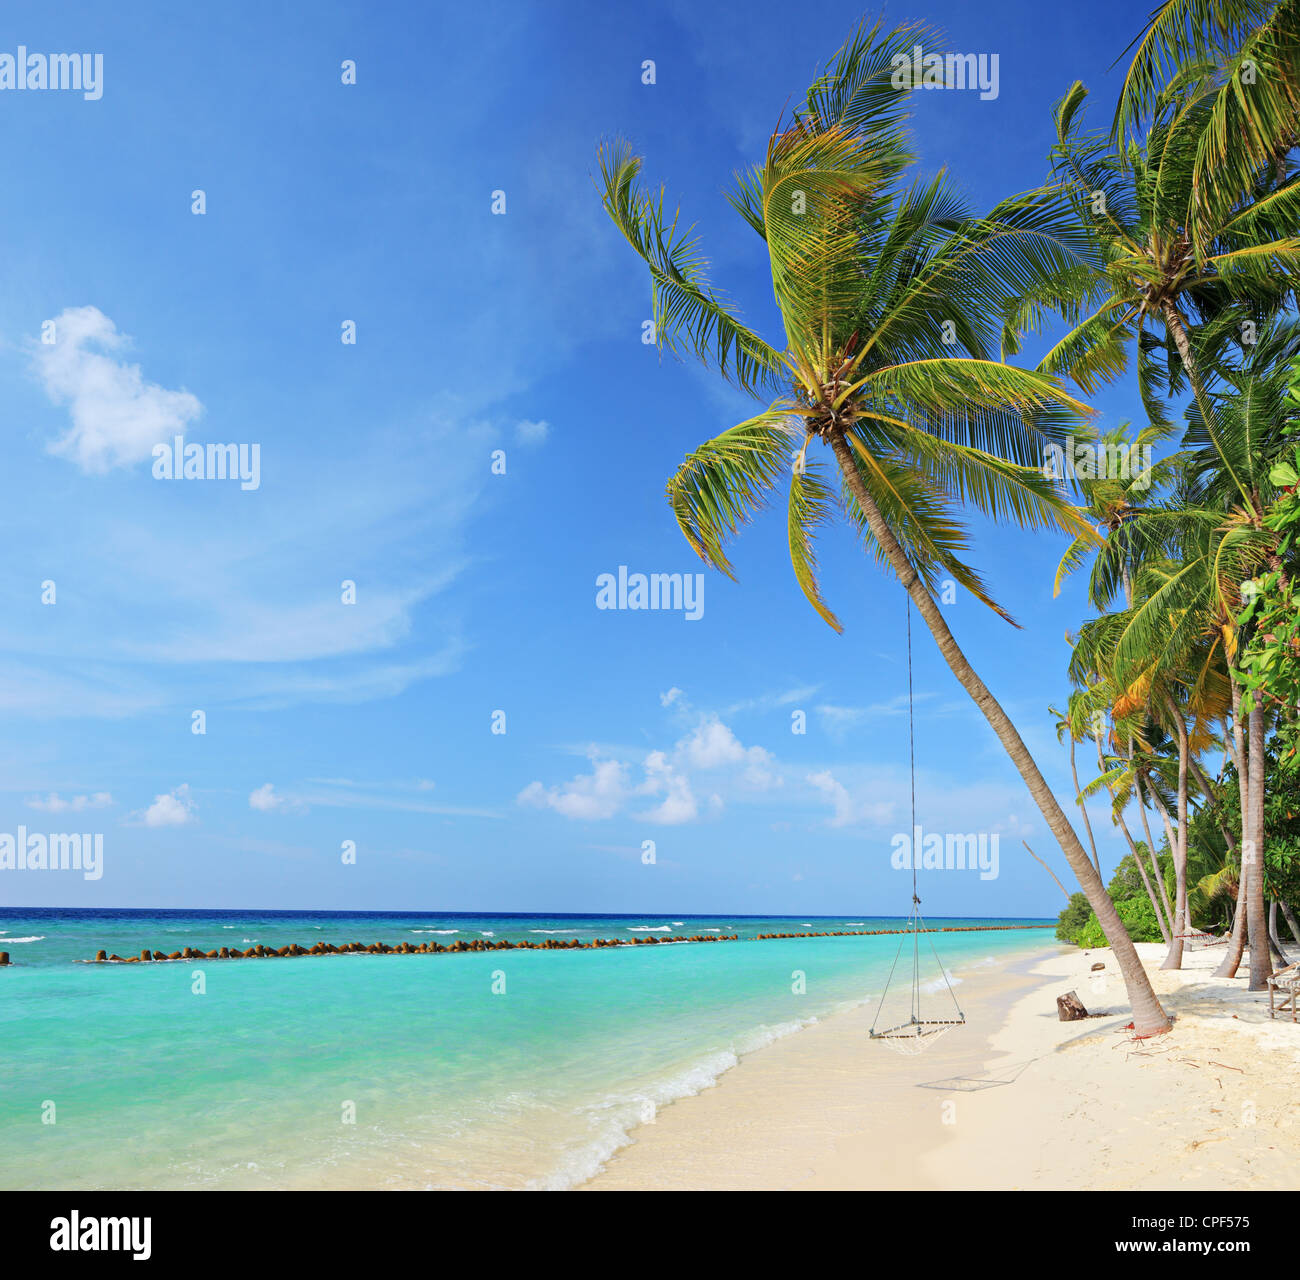 Beach Scene With A Swing On Palm Tree Sunny Day Kuredu Island Maldives Lhaviyani Atoll